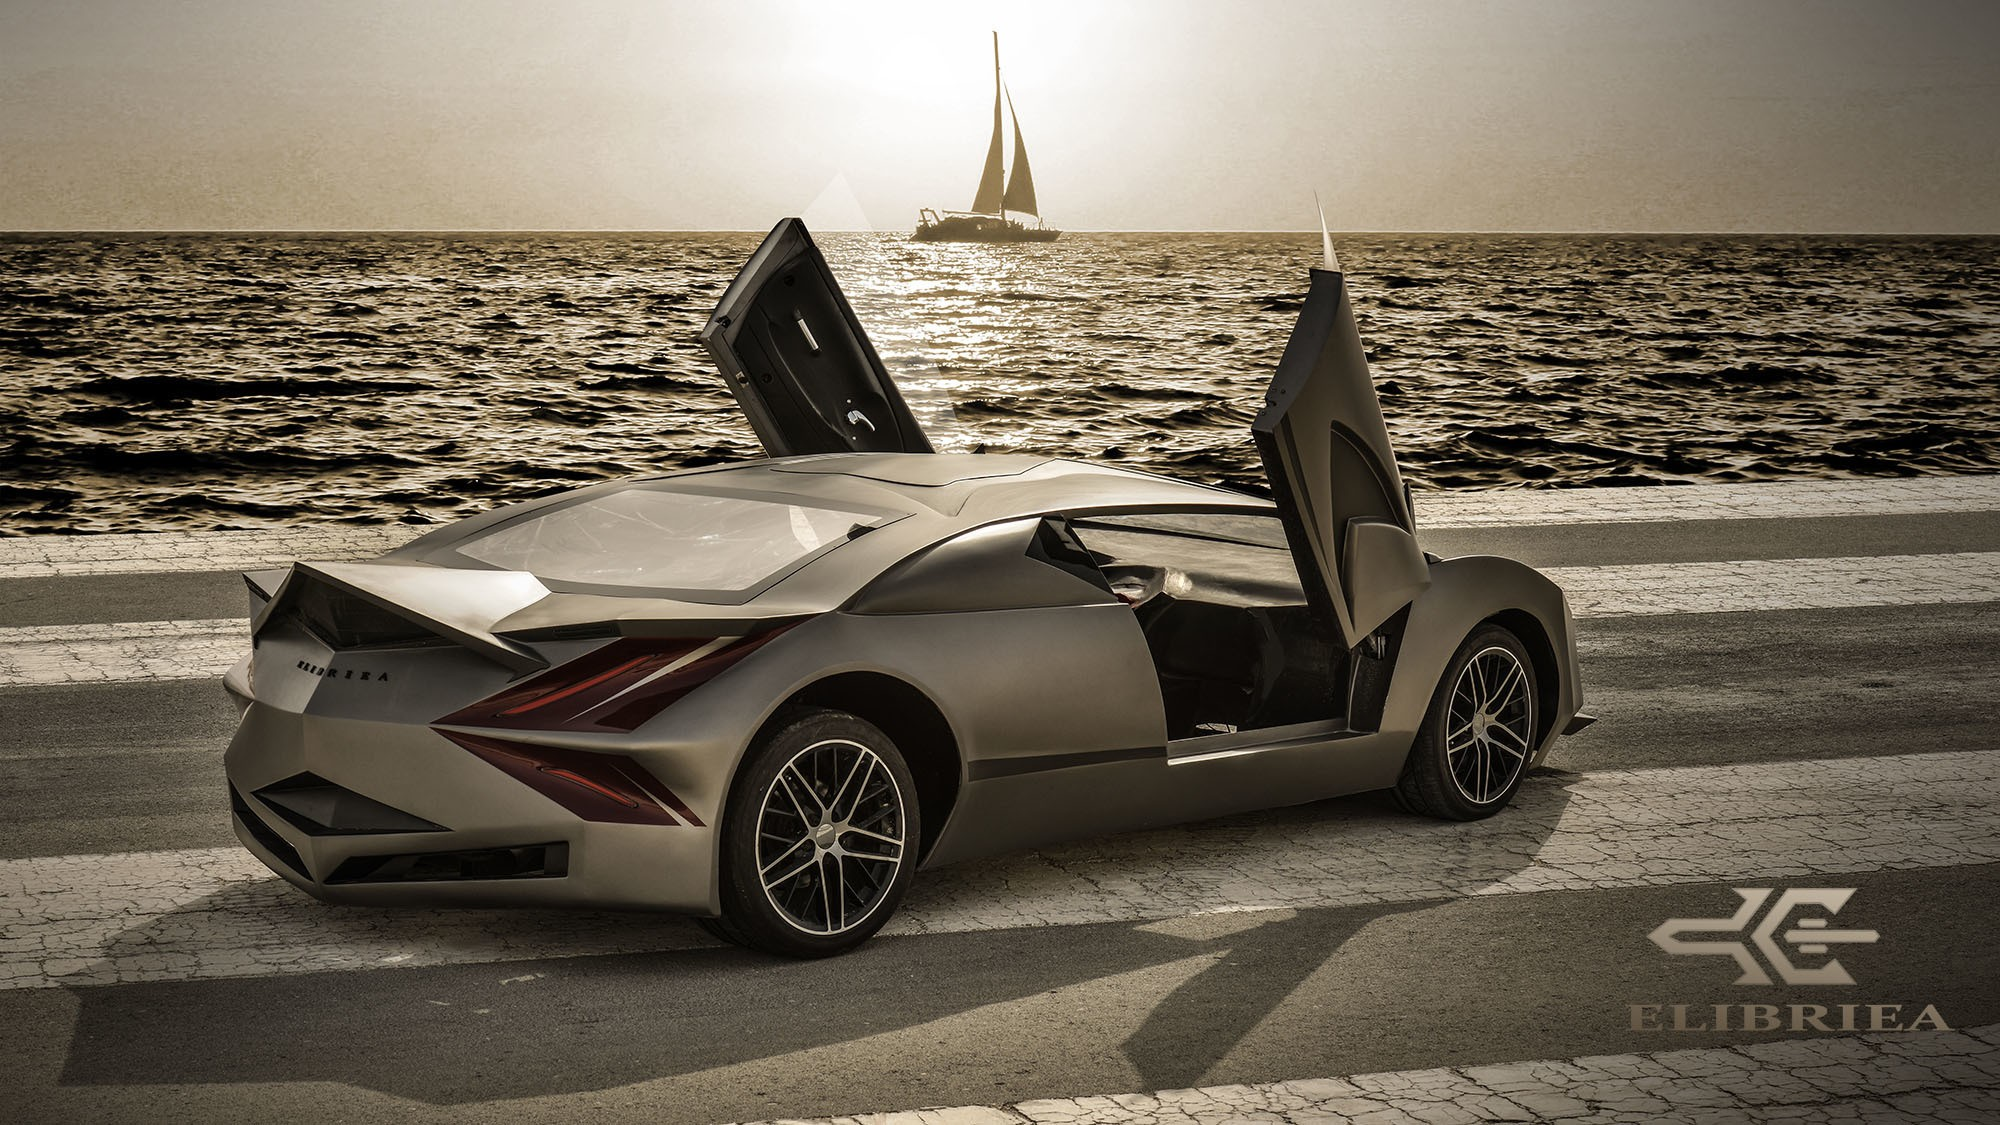 qatar 39 s first luxury sports car is called the elibriea equvallas autoevolution. Black Bedroom Furniture Sets. Home Design Ideas